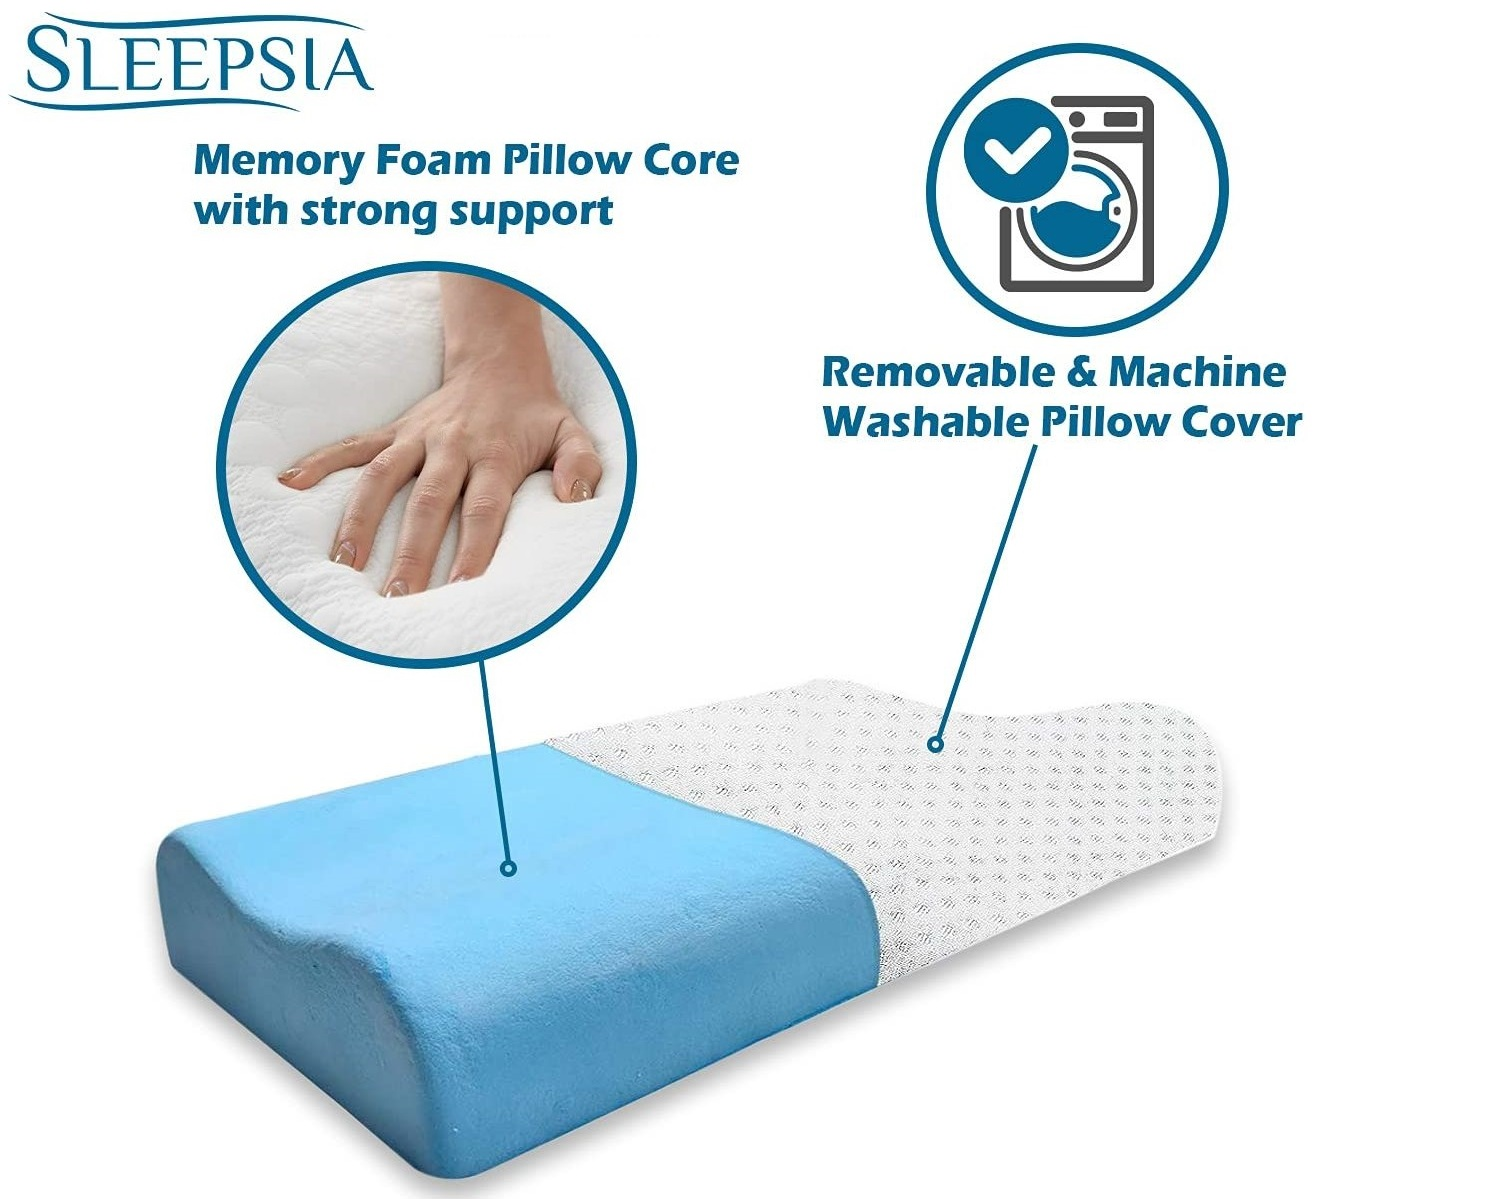 Best Pillow for Cervical Pain and Neck Pain: Memory Foam Pillow